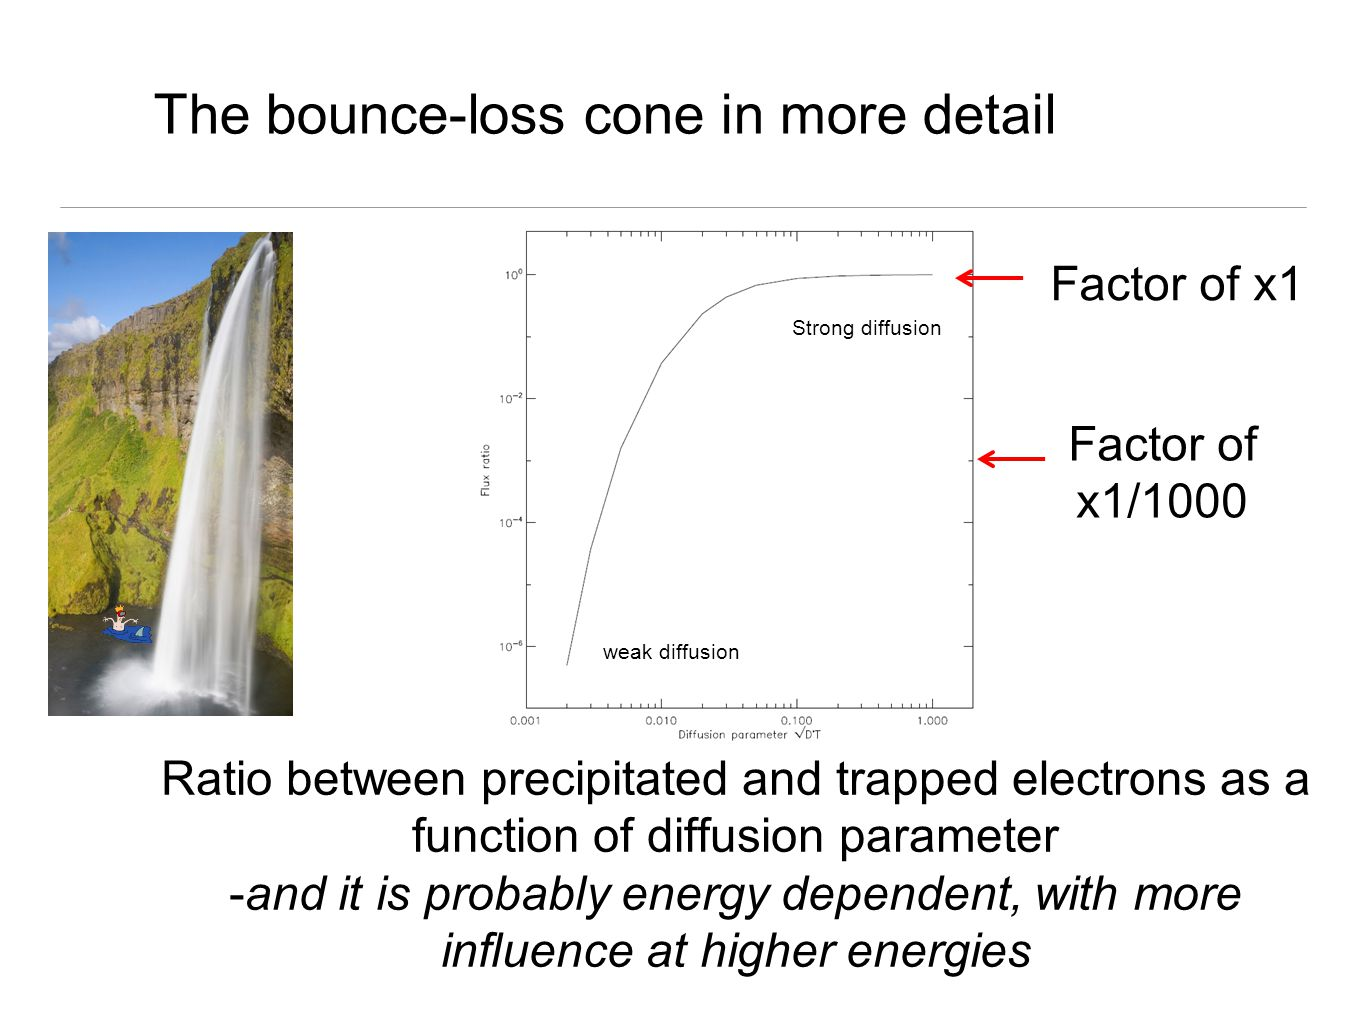 The bounce-loss cone in more detail Ratio between precipitated and trapped electrons as a function of diffusion parameter -and it is probably energy dependent, with more influence at higher energies Factor of x1 Factor of x1/1000 Strong diffusion weak diffusion